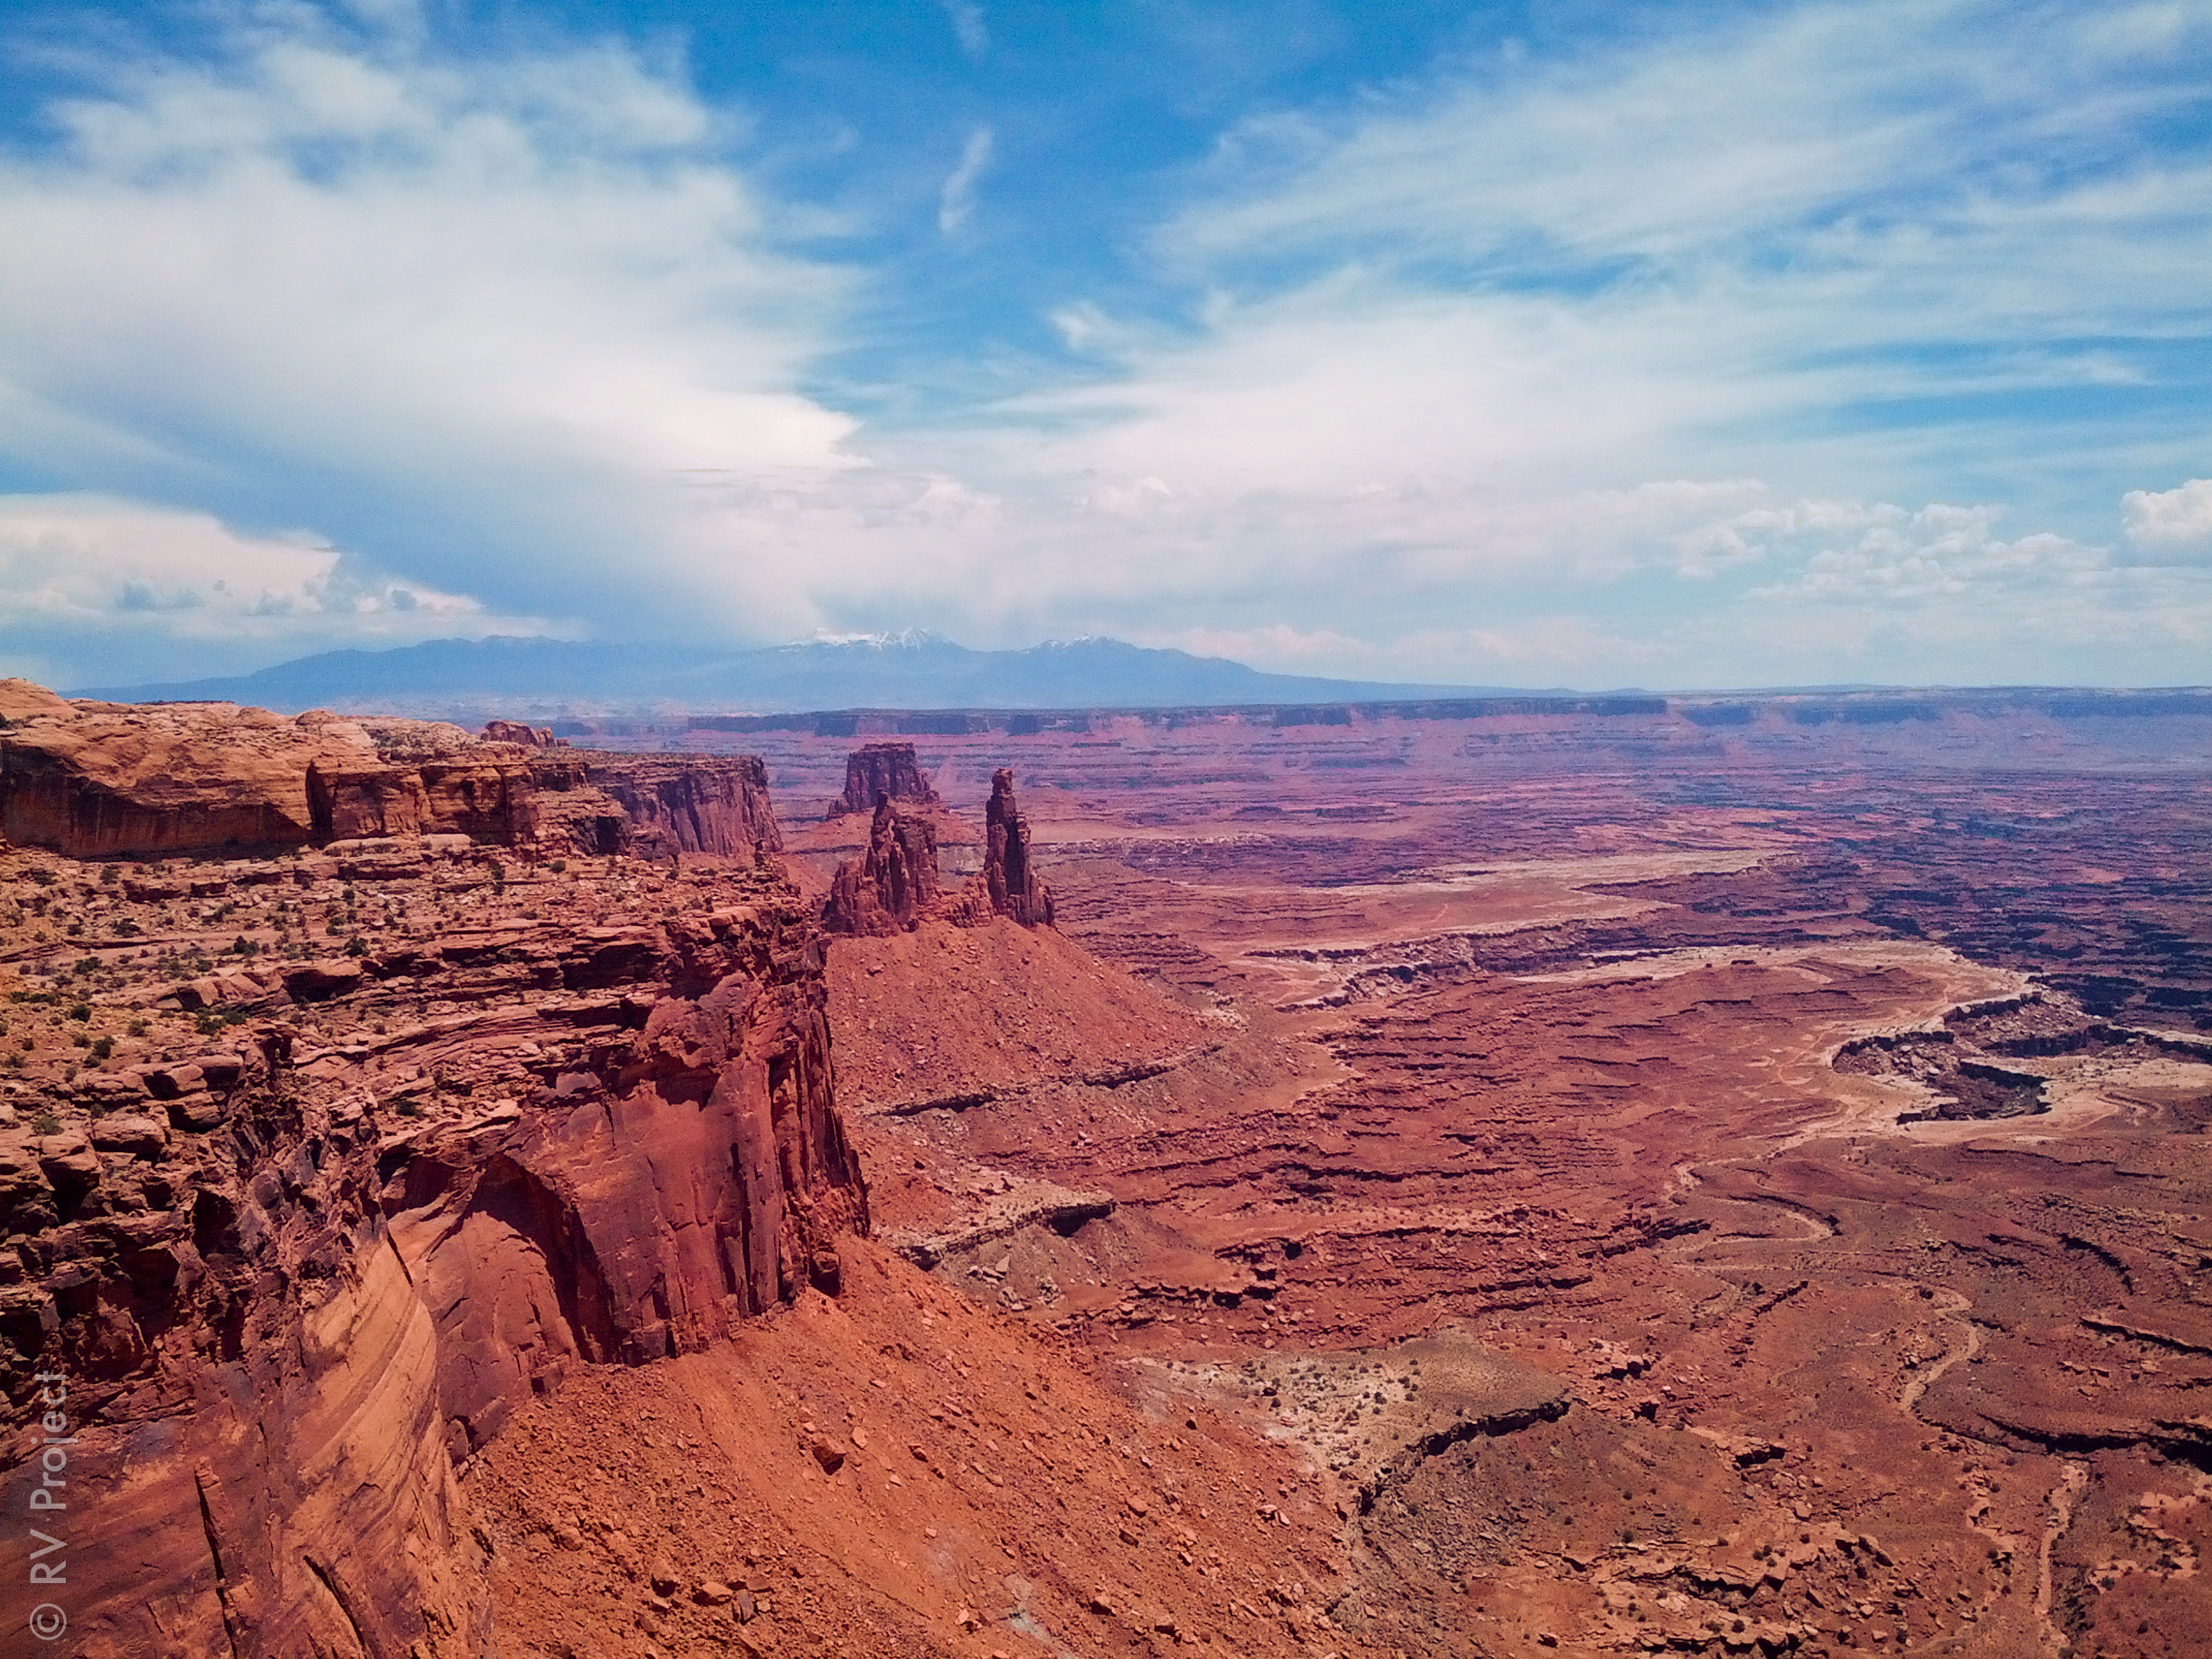 Canyonlands, another view.